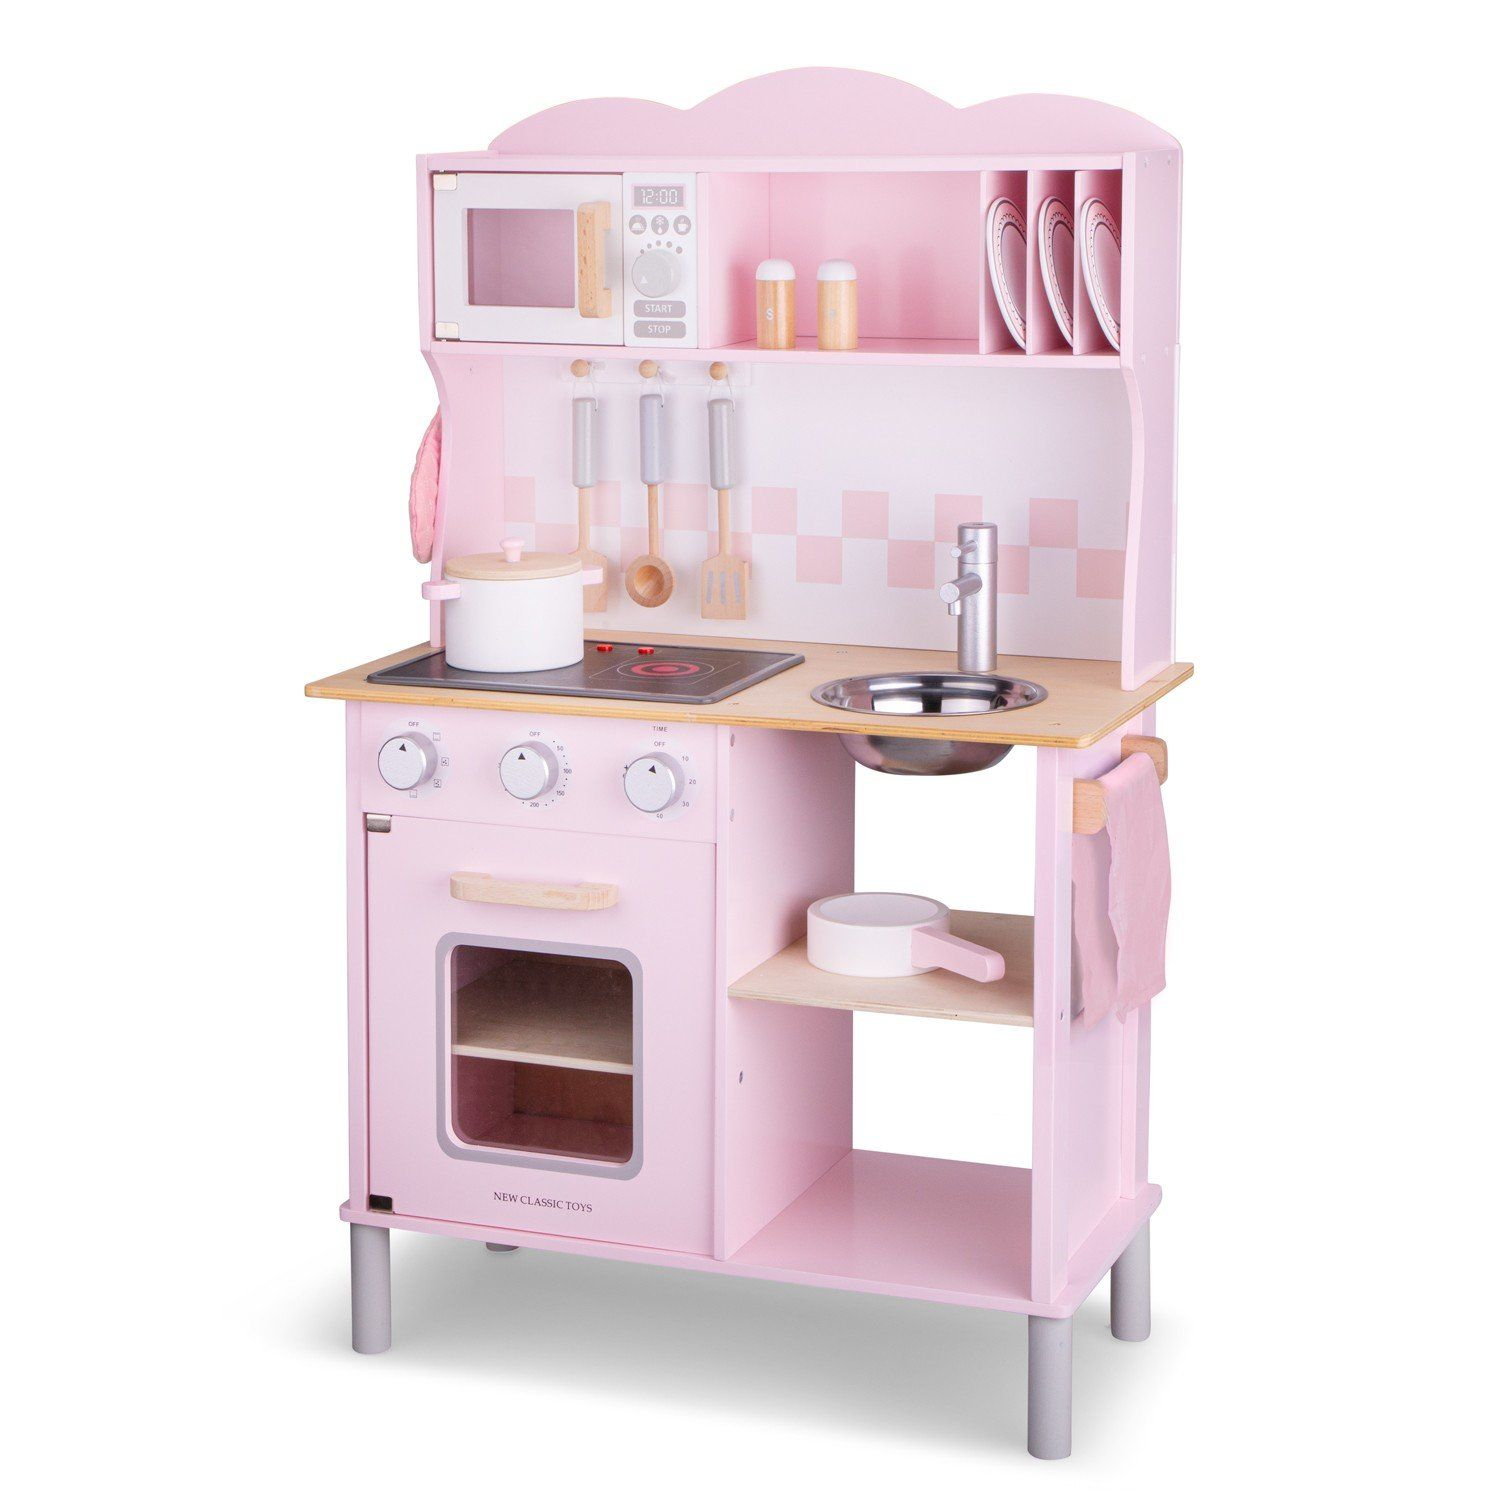 New Classic Toys Wooden Kitchen Modern Electric Cooking Pink …